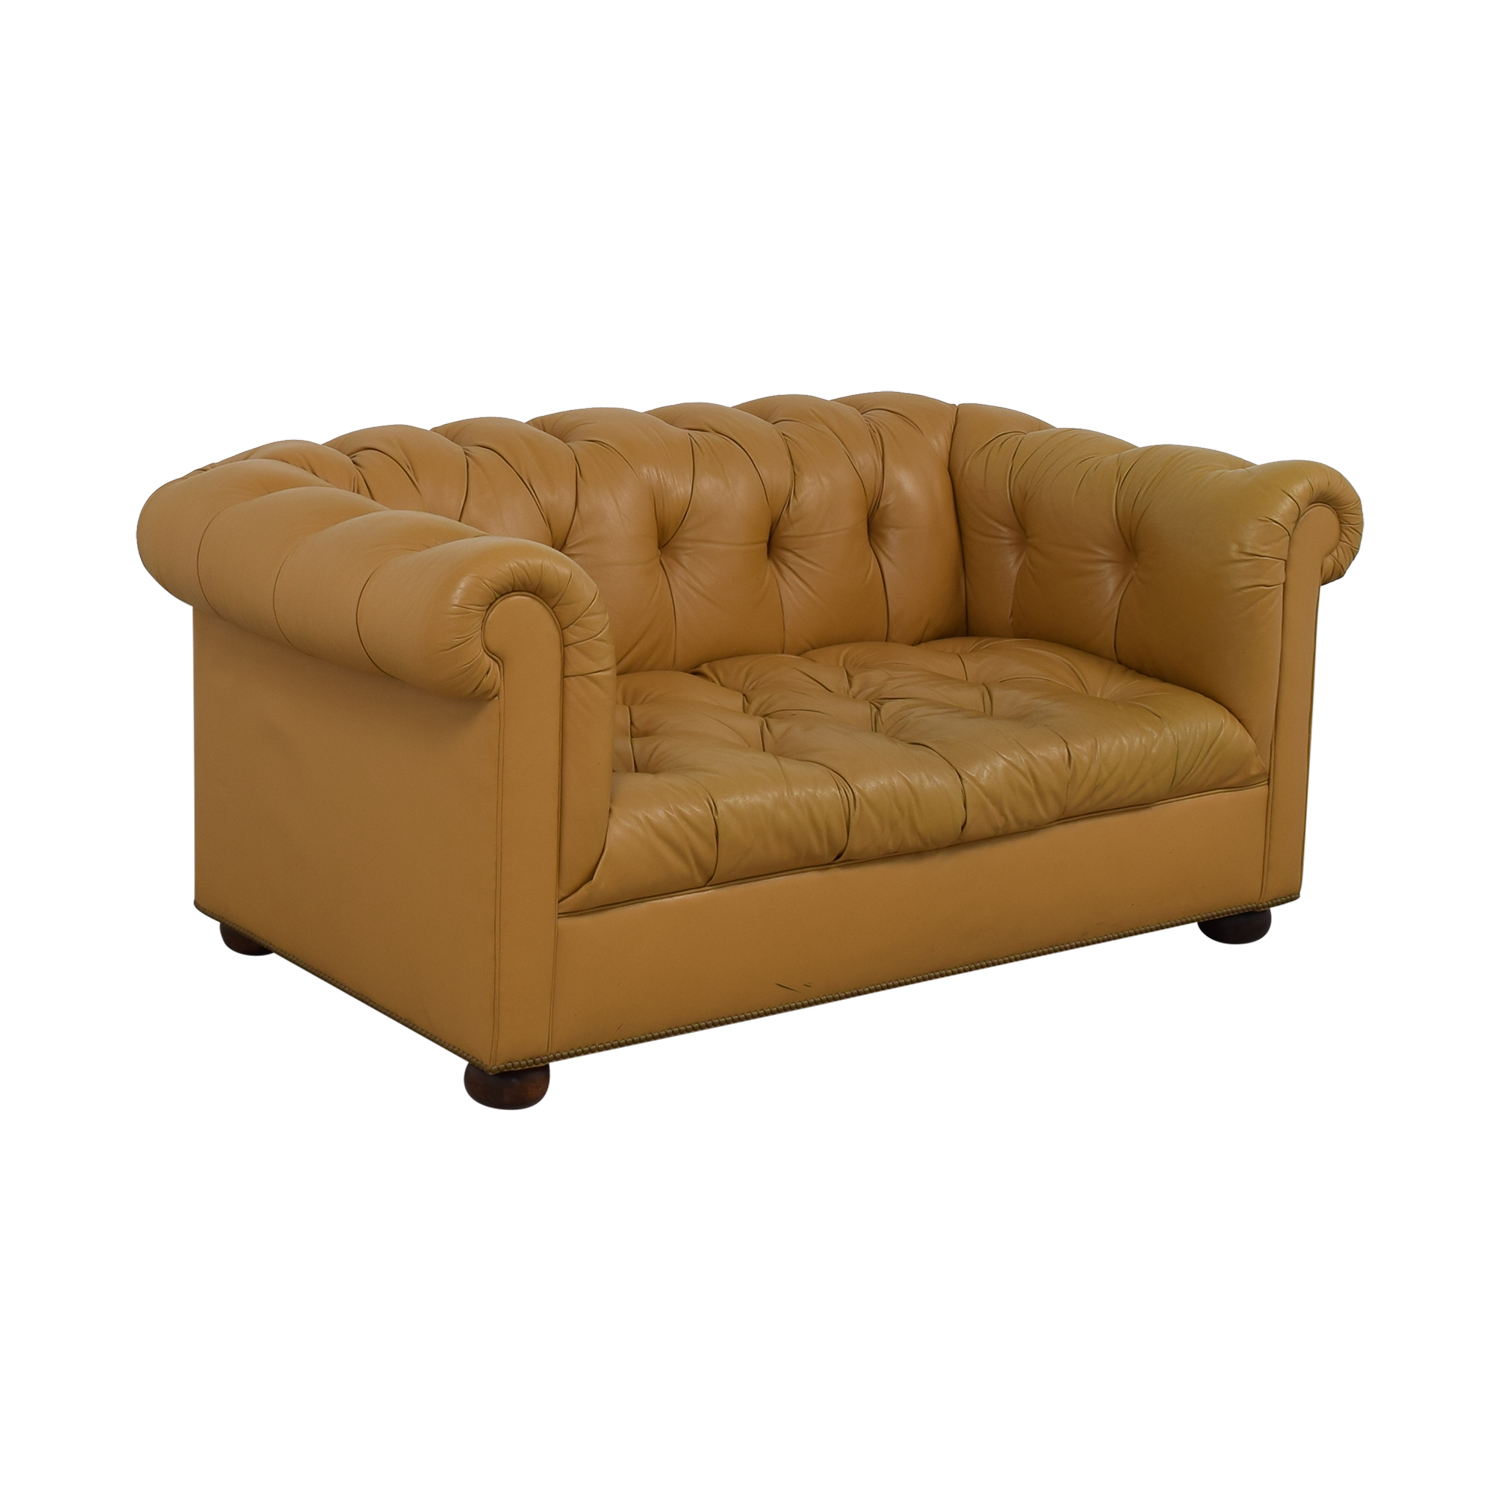 Tan Tufted Single-Cushion Couch Loveseats